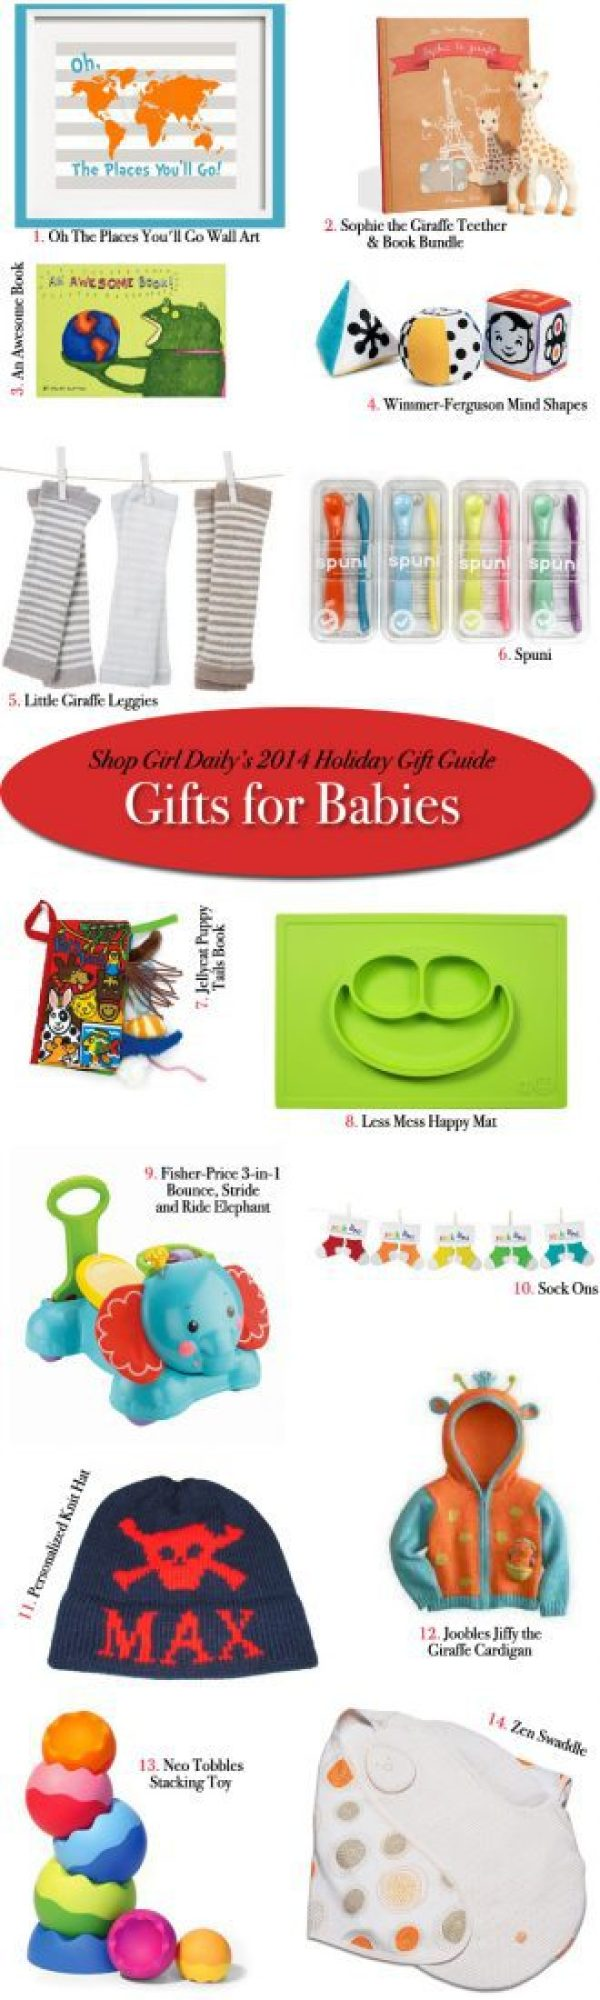 Baby Gifts For Christmas 2014 : Holiday gift guide gifts for babies girl daily